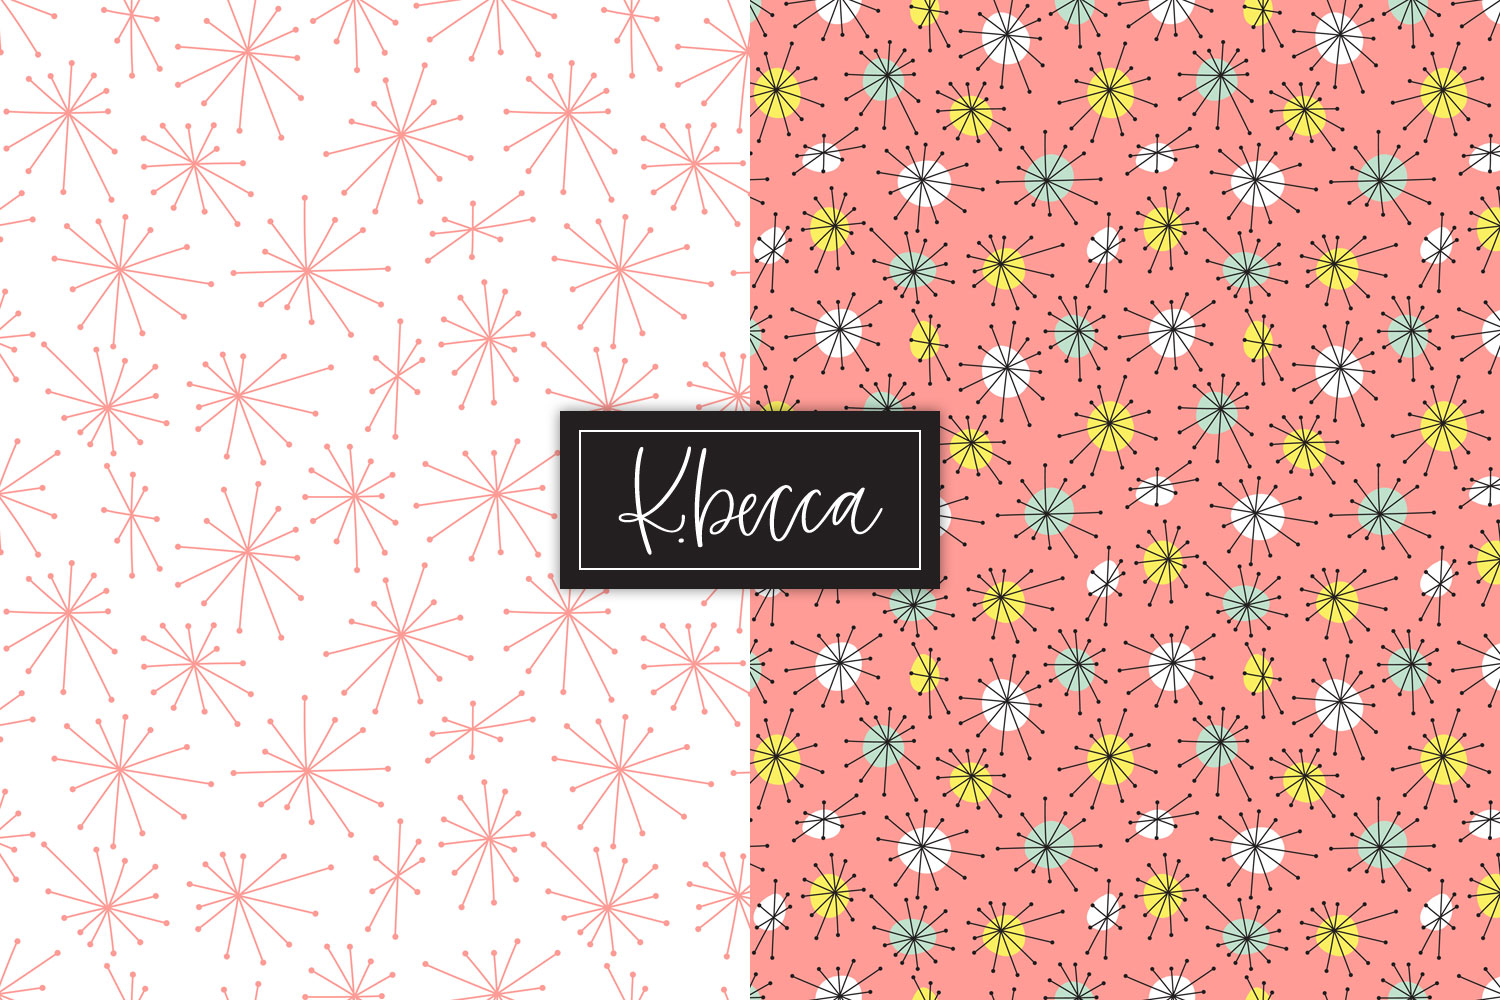 Retro 1950s Background Patterns Seamless example image 2